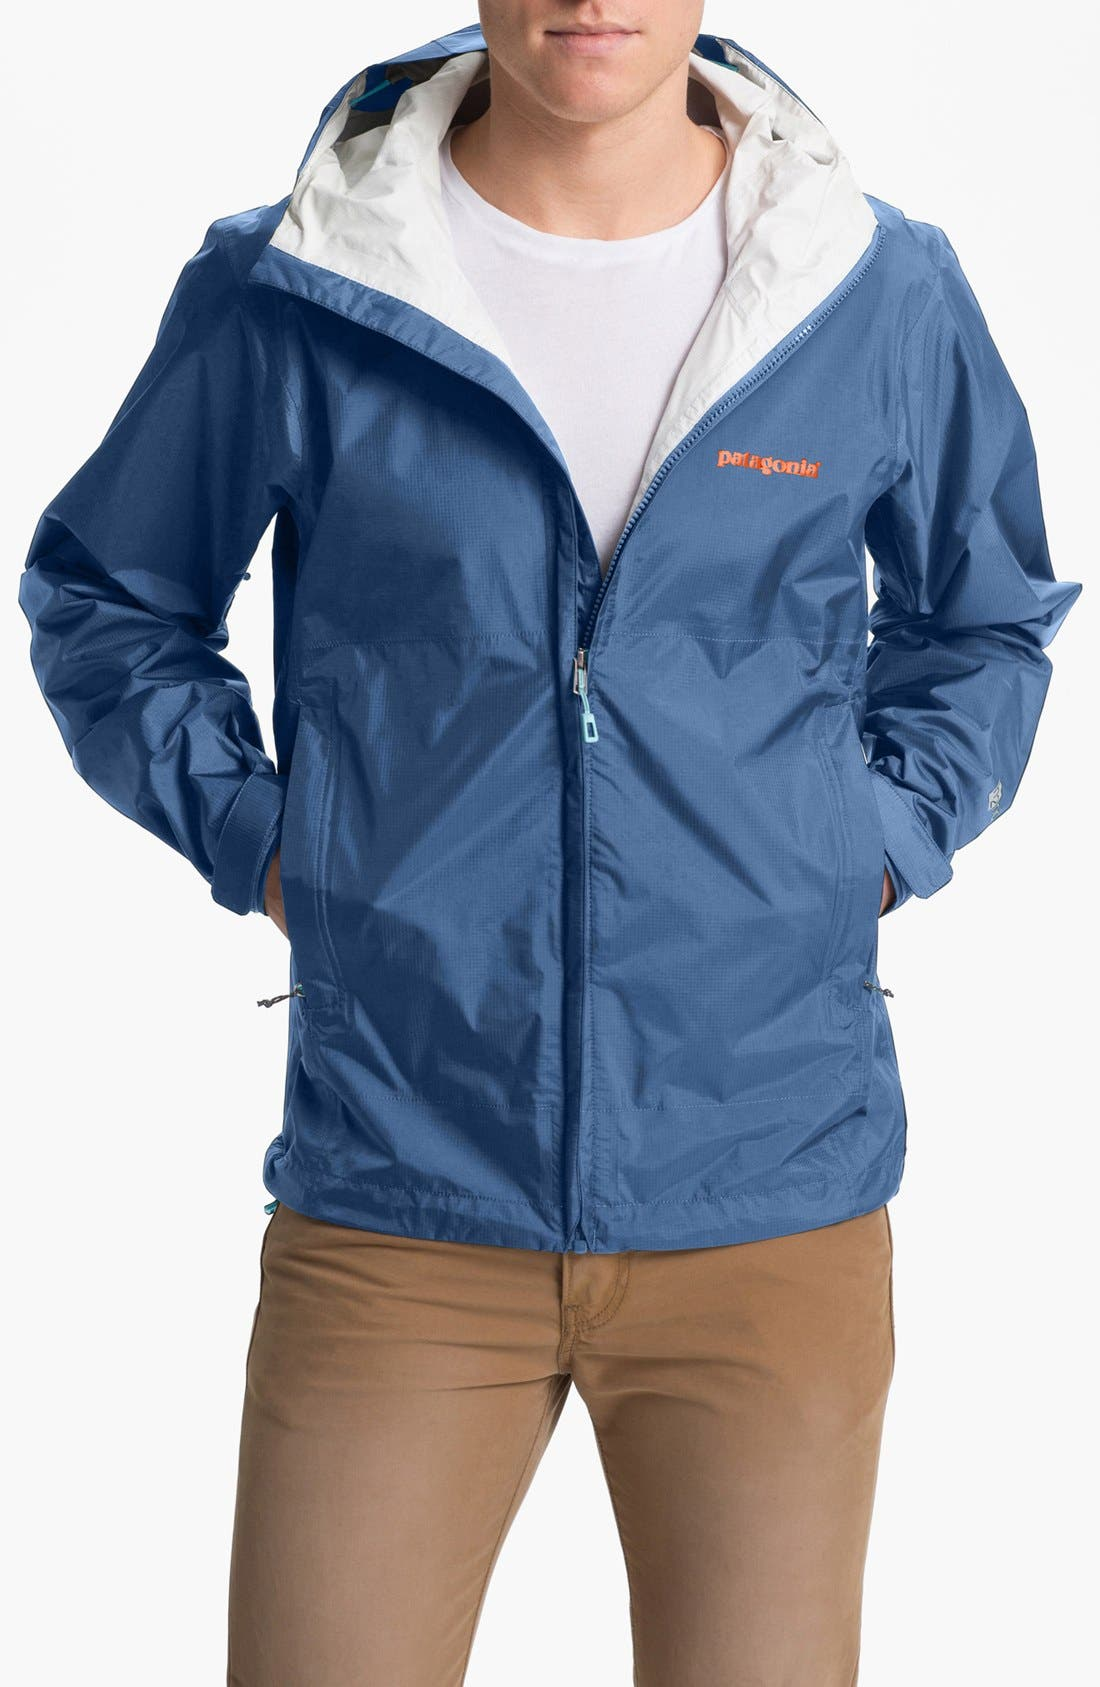 Main Image - Patagonia 'Torrentshell' Packable Rain Jacket